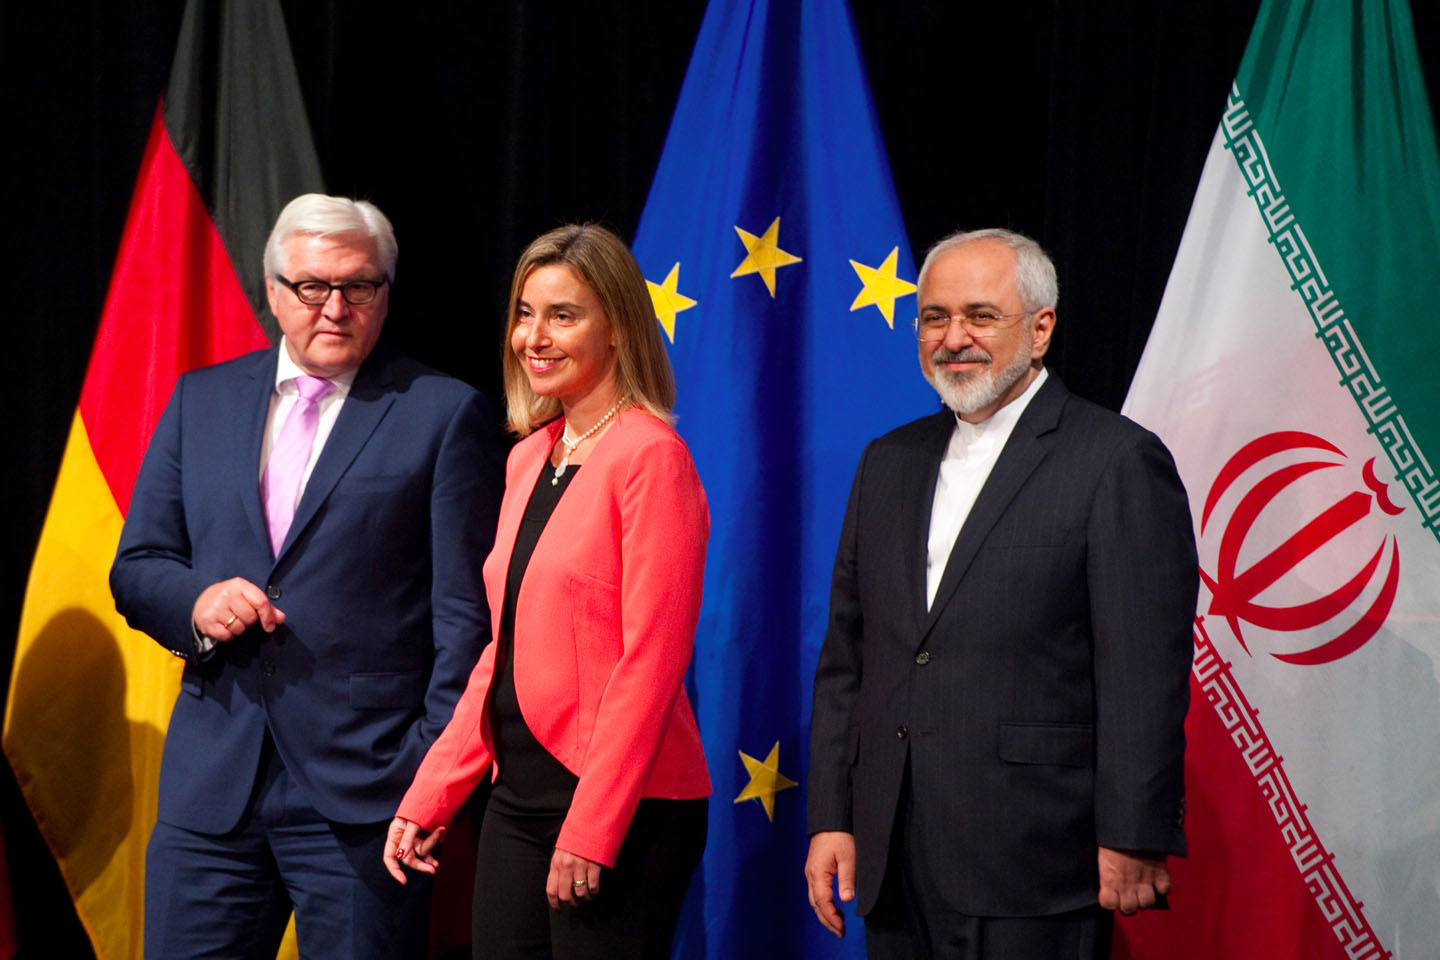 Frank-Walter Steinmeier, German Minister for Foreign Affairs, Federica Mogherini and Mohammed Javad Zarif (from left to right)